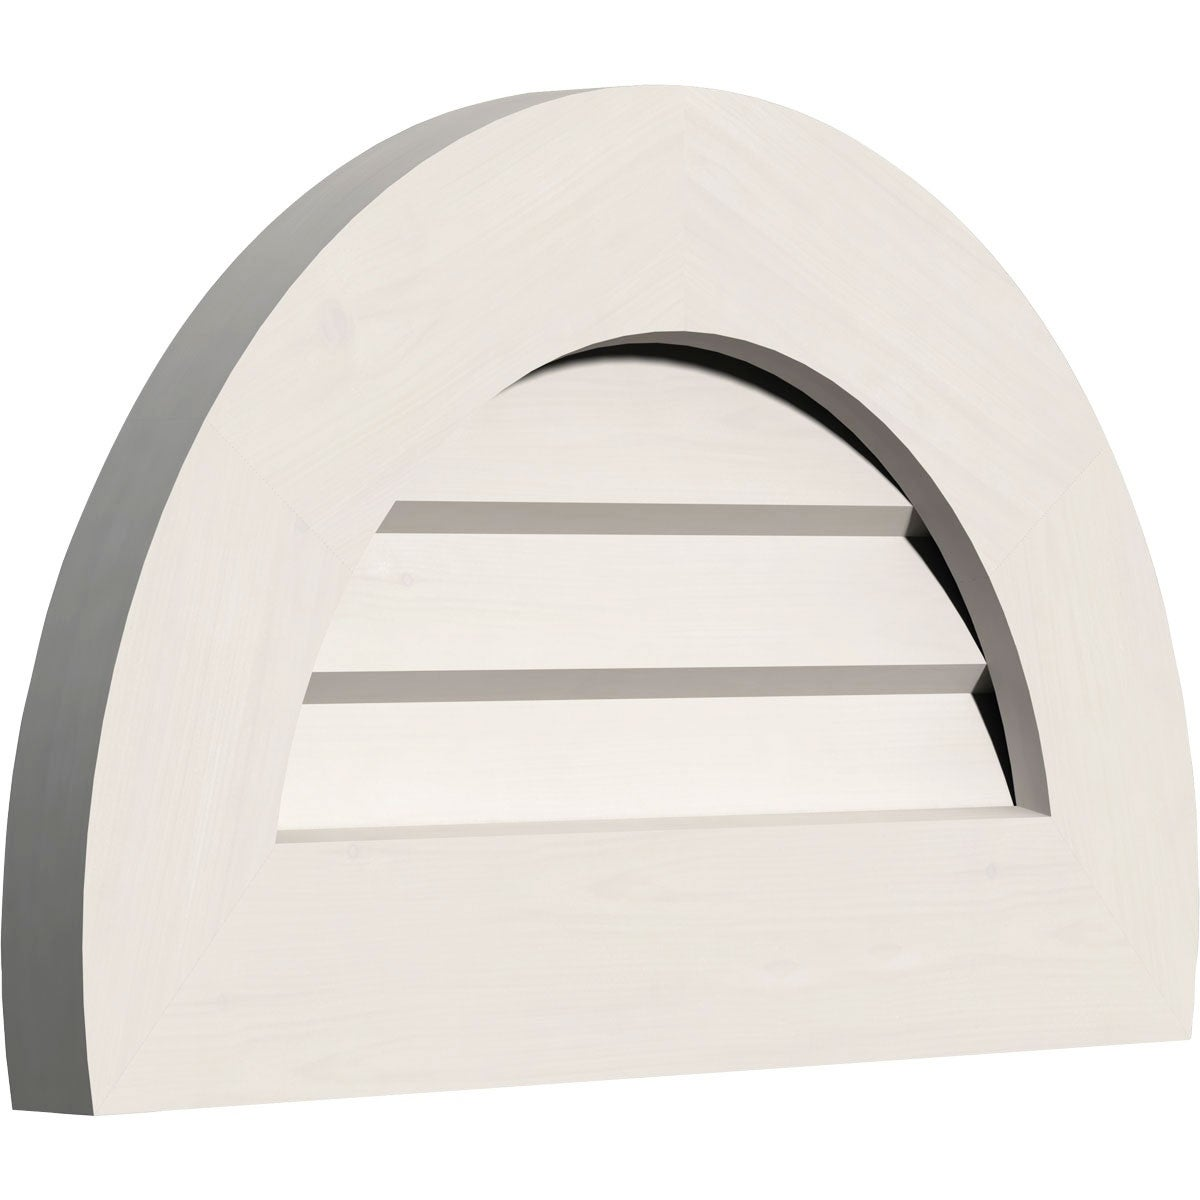 Half Round Gable Vent (Non-Functional / 36W x 18H)